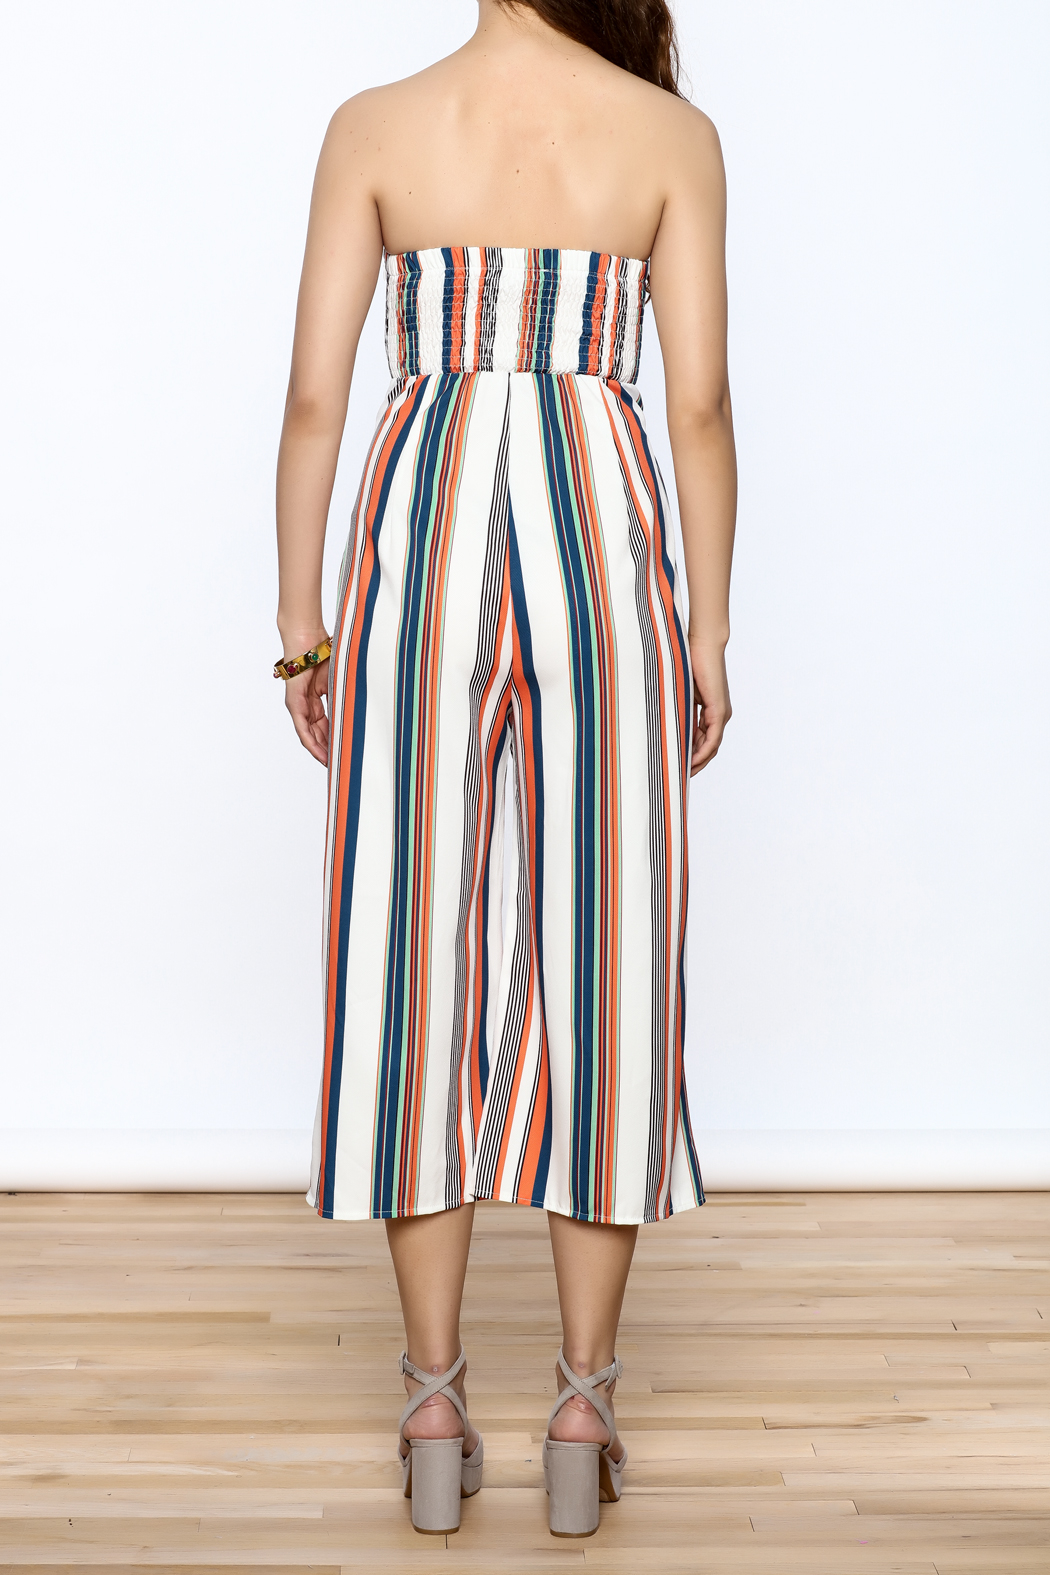 L'atiste Stripe Print Strapless Jumpsuit From Florida By